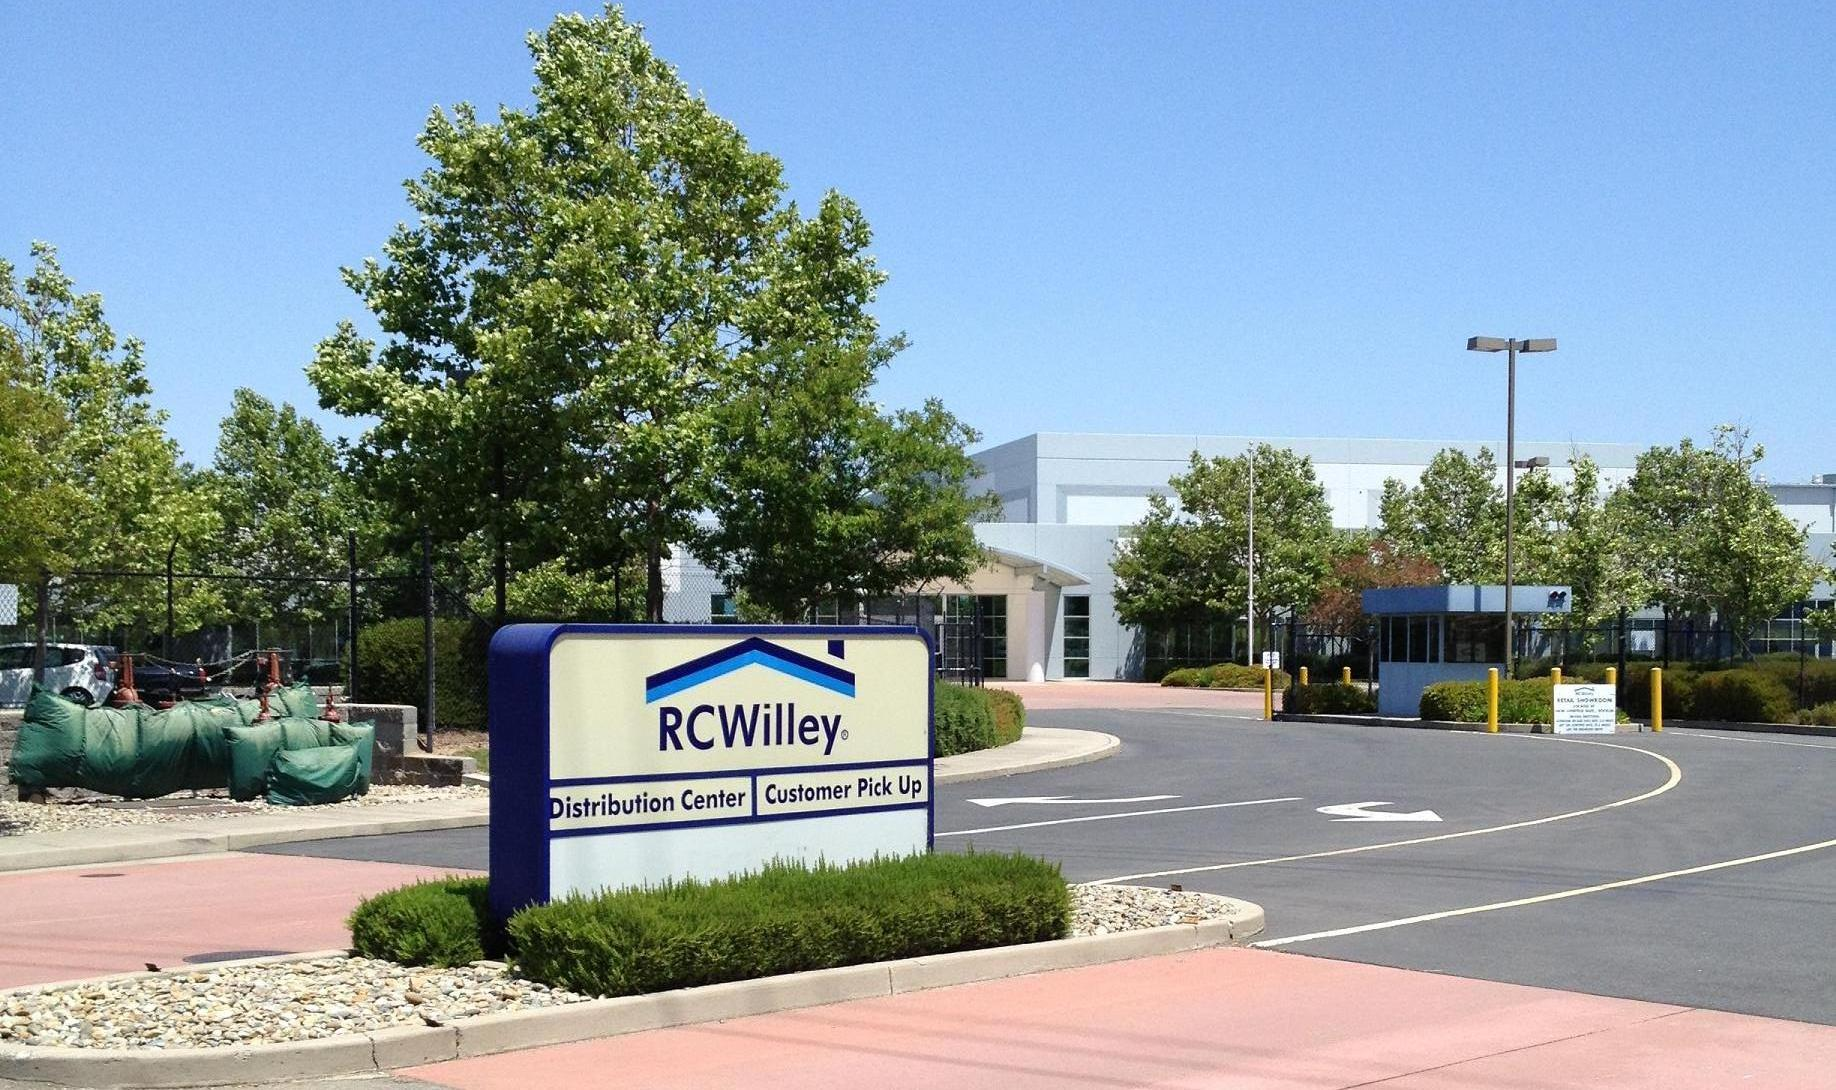 Rc Willey Roseville Distribution Center in Roseville, CA 95678 - ChamberofCommerce.com